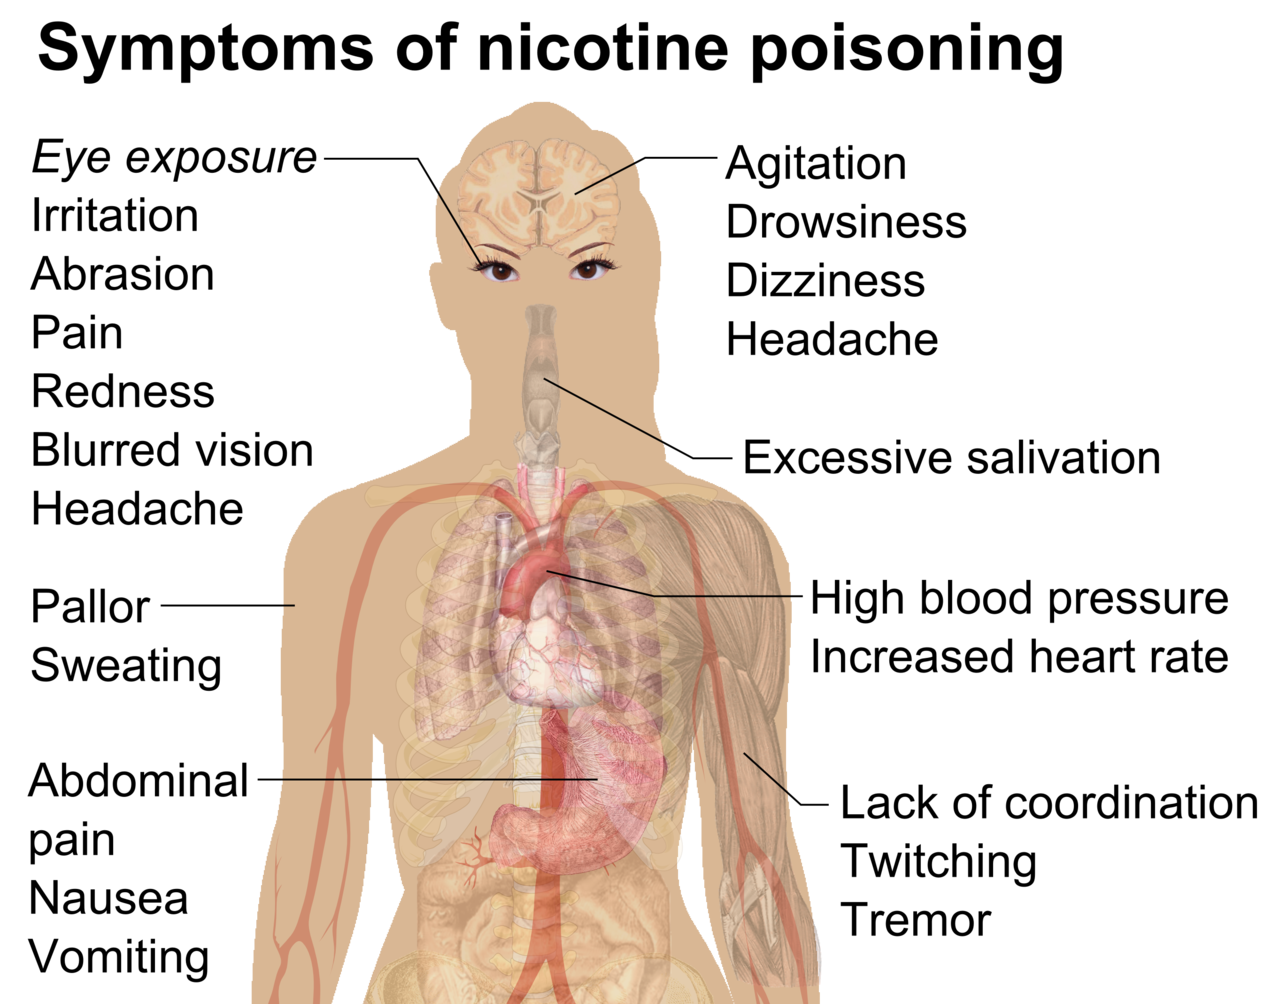 File:Symptoms of nicotine poisoning.png - Wikimedia Commons